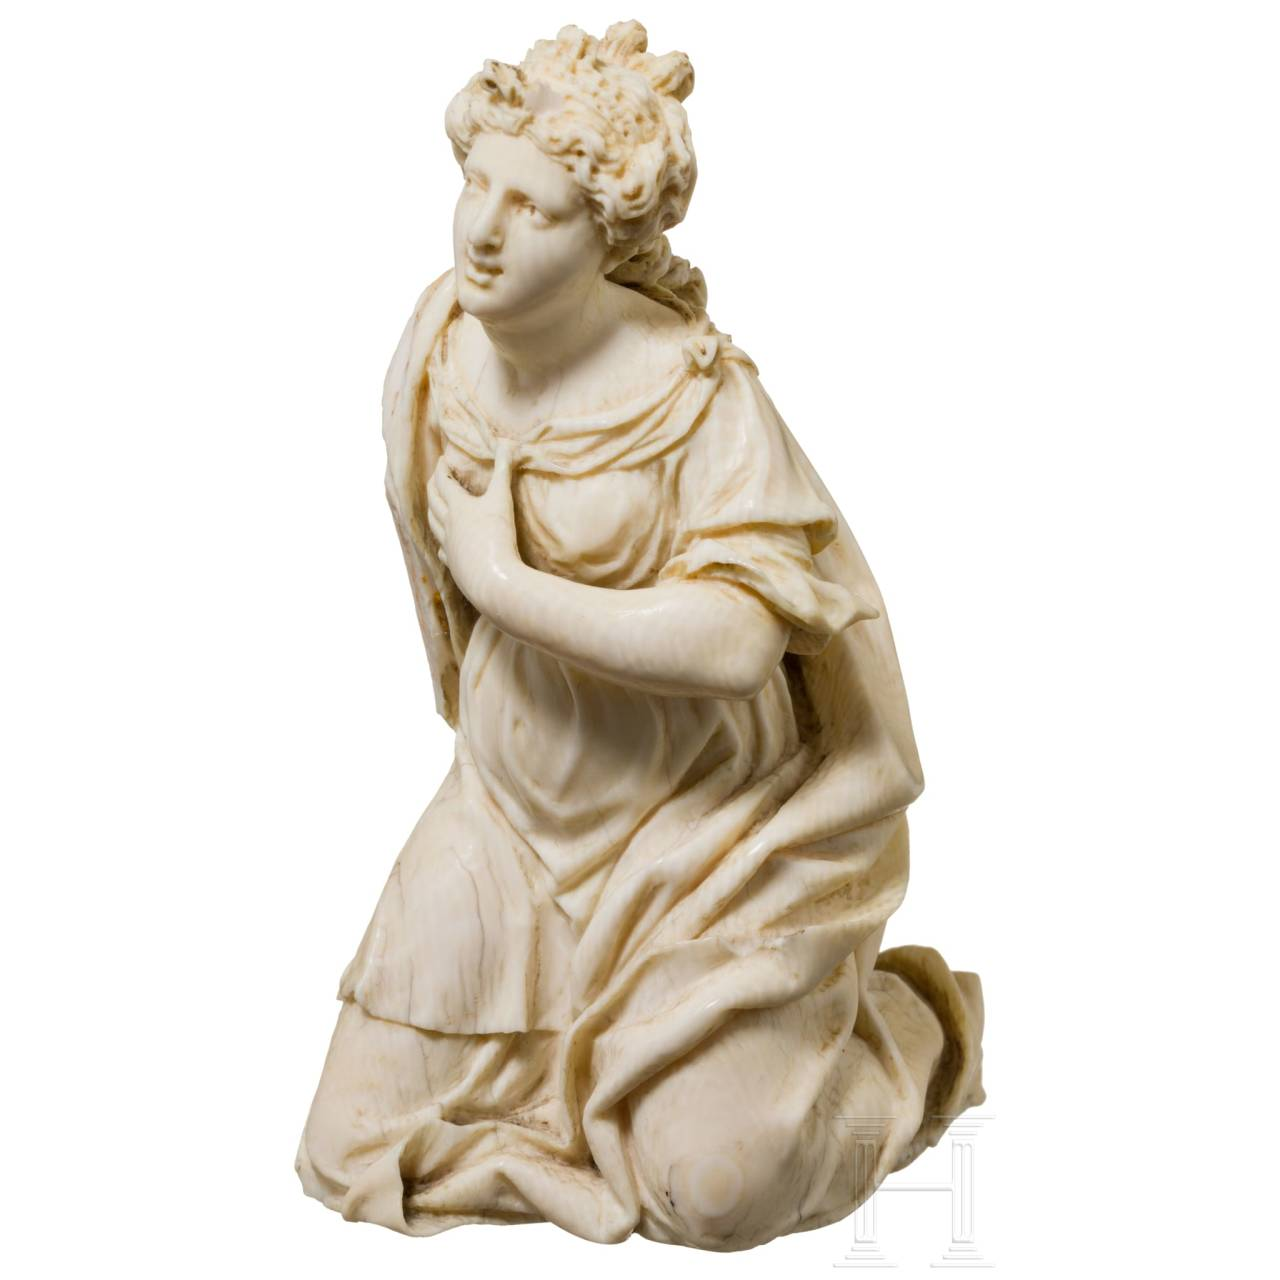 A Flemish carved ivory figurine of Mary Magdalene, 17th century